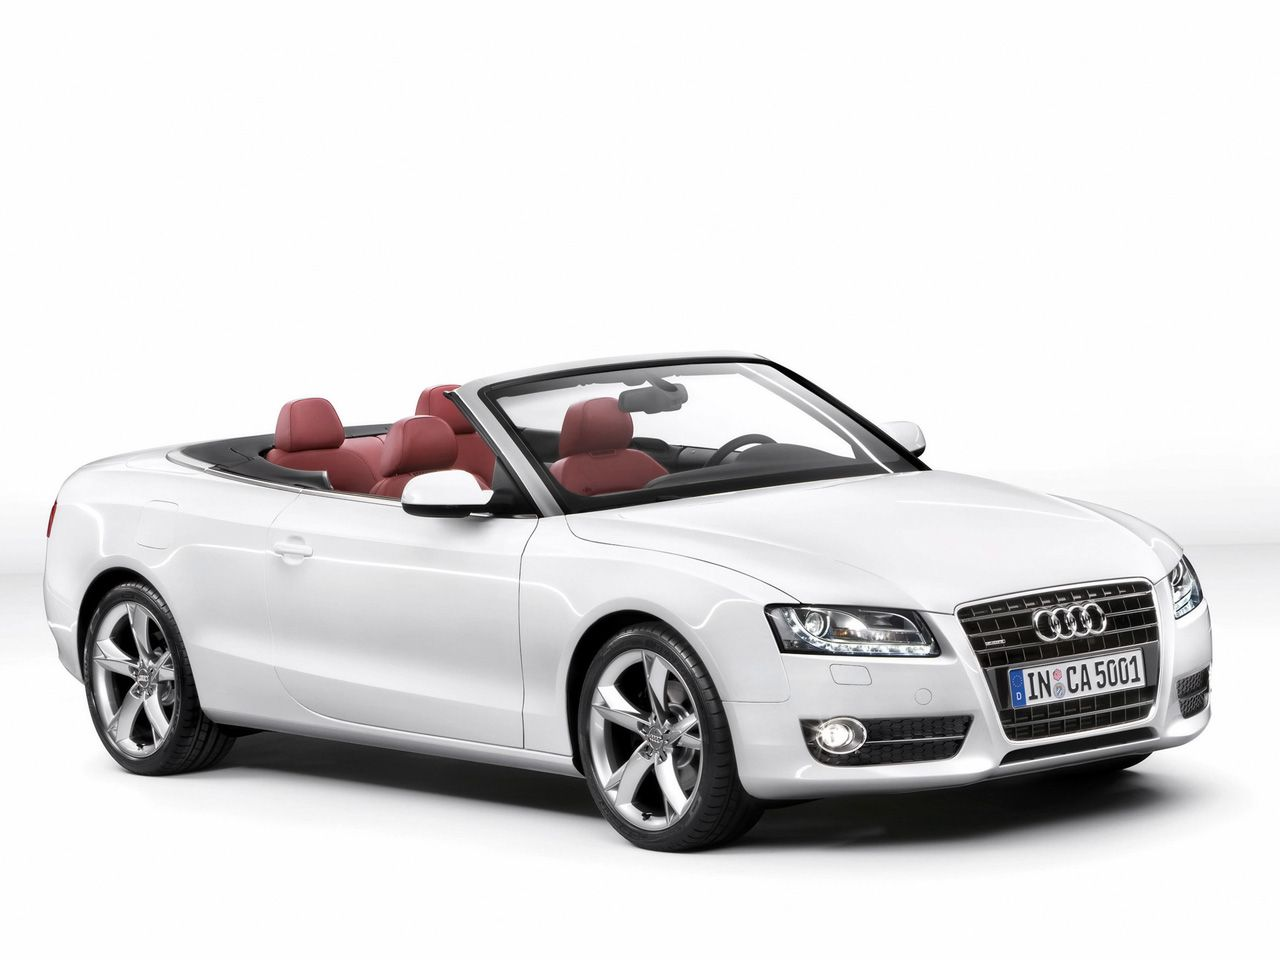 2010 Audi A5 Convertible Cabriolet For Exotic